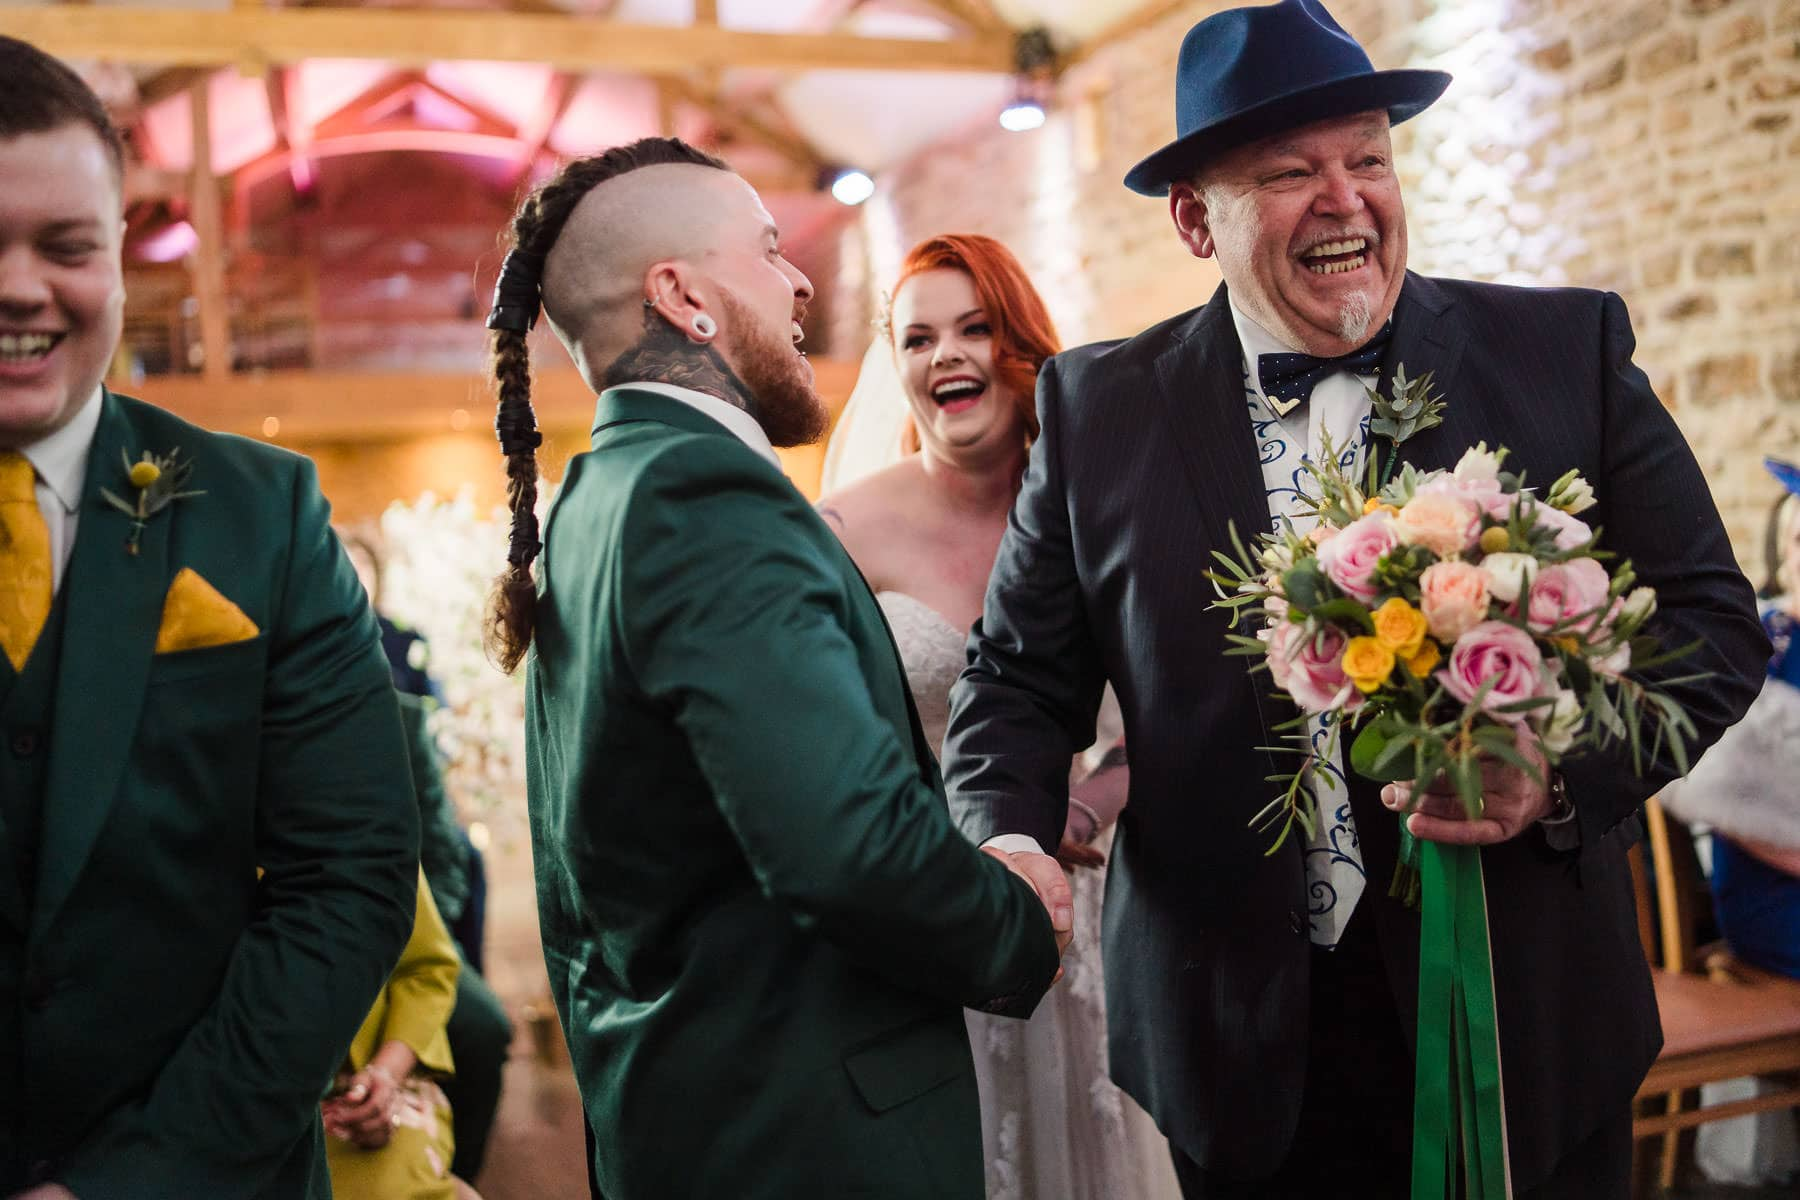 Viking groom shakes hand of father of the bride